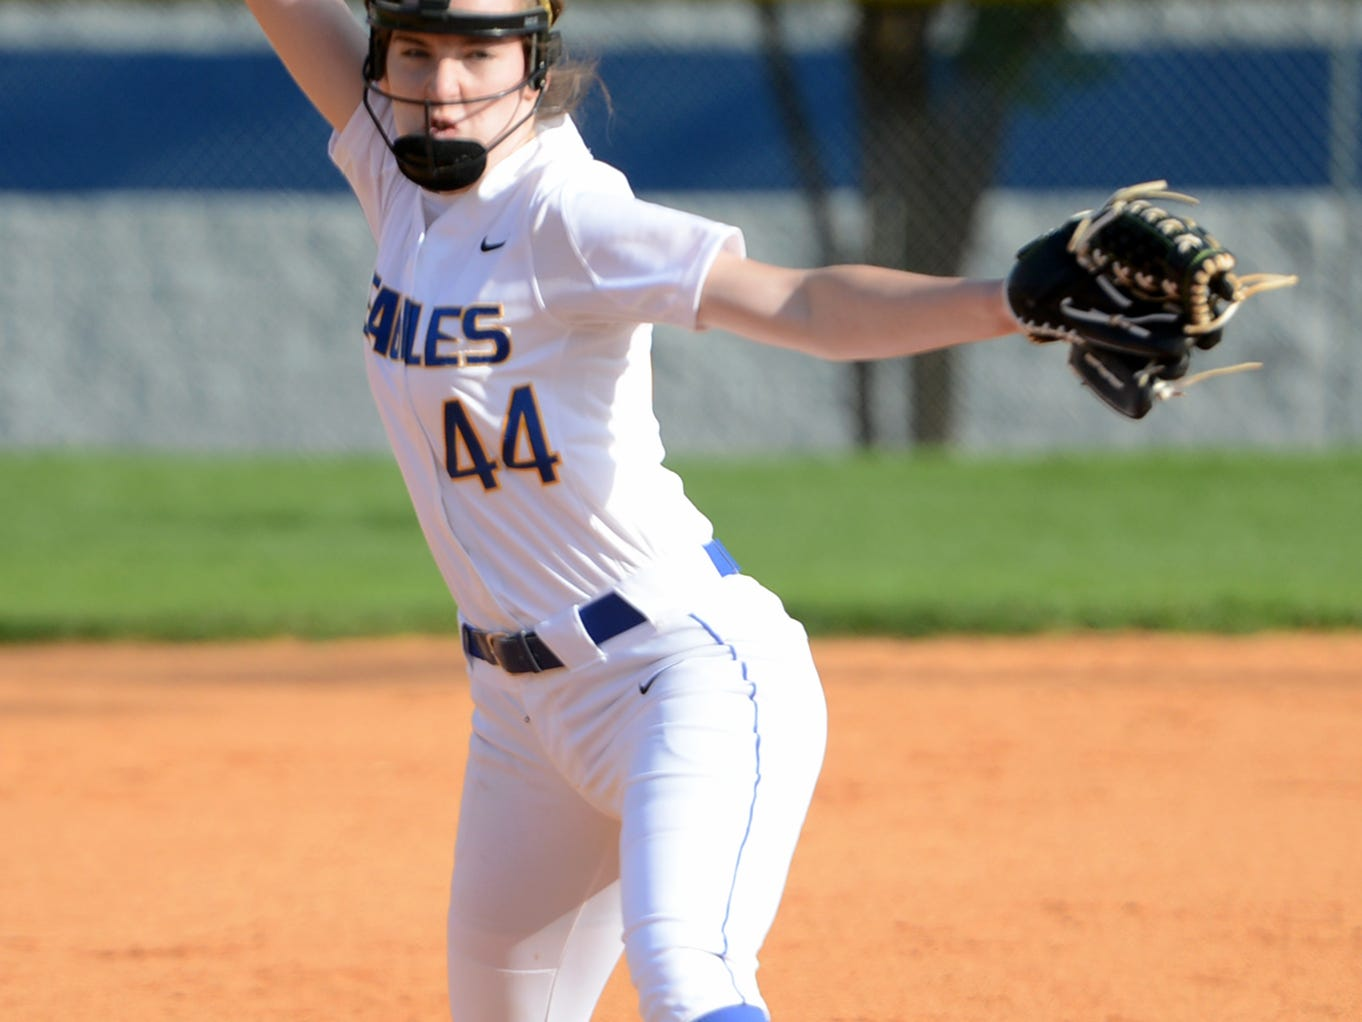 Jackson Christian pitcher Kayla Forsythe winds back for a pitch during their game against Madison, Monday.